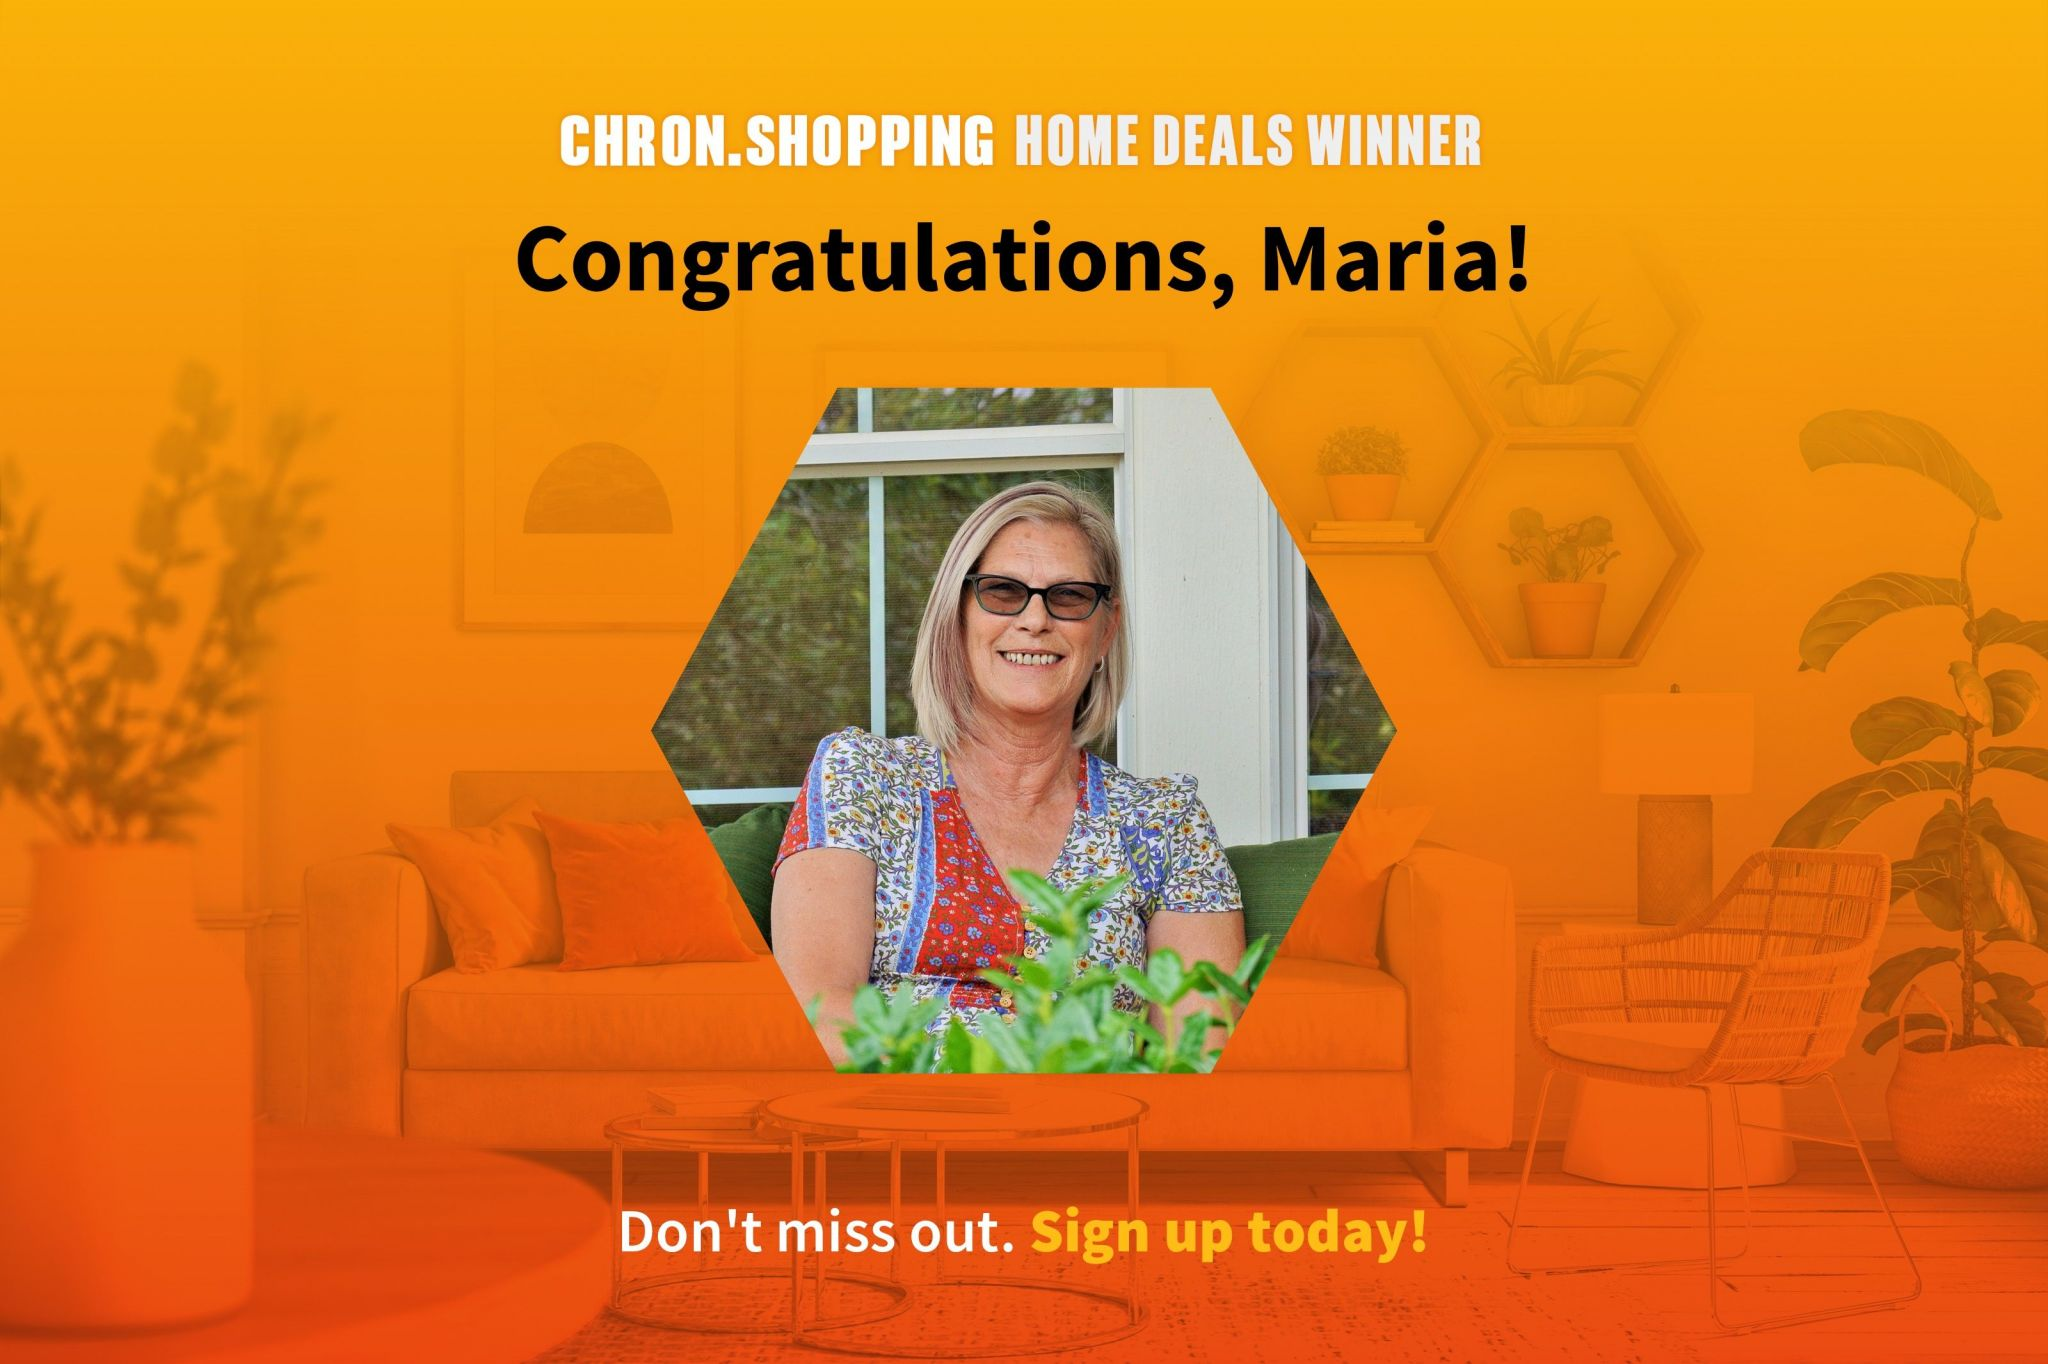 Maria won a $1,000 gift card to The Container Store. Sign up for our Home Deals Digest and your chance to win our next prize!